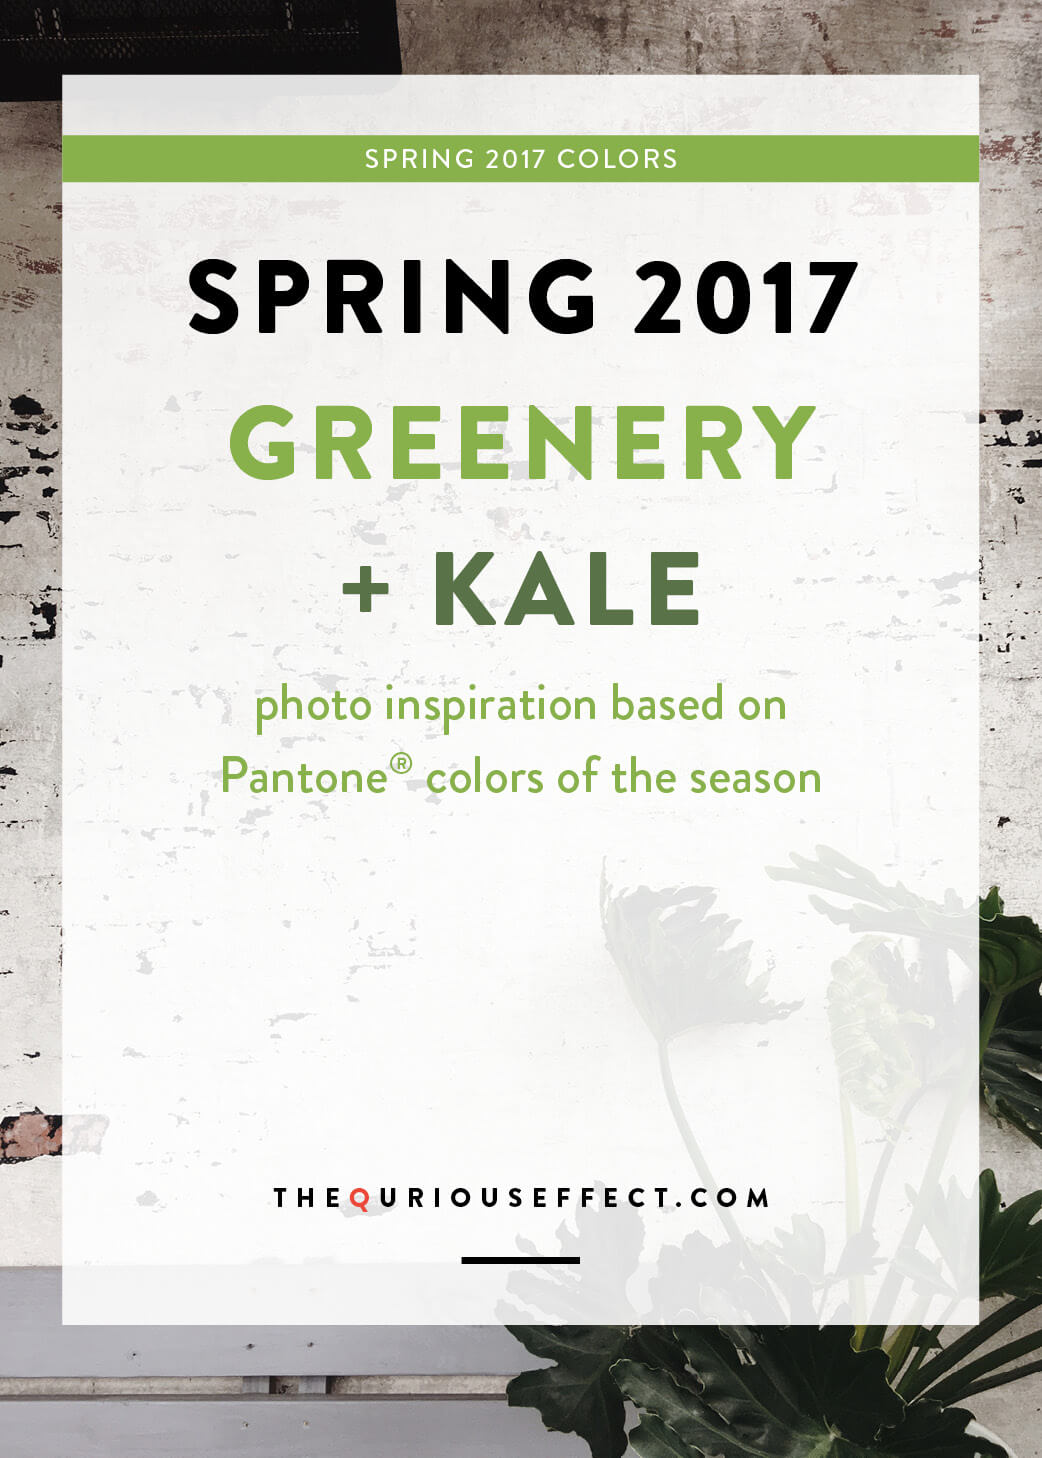 Spring 2017 Pantone® Color Photo Inspiration by The Qurious Effect. A Brand and Squarespace Web Design Studio.